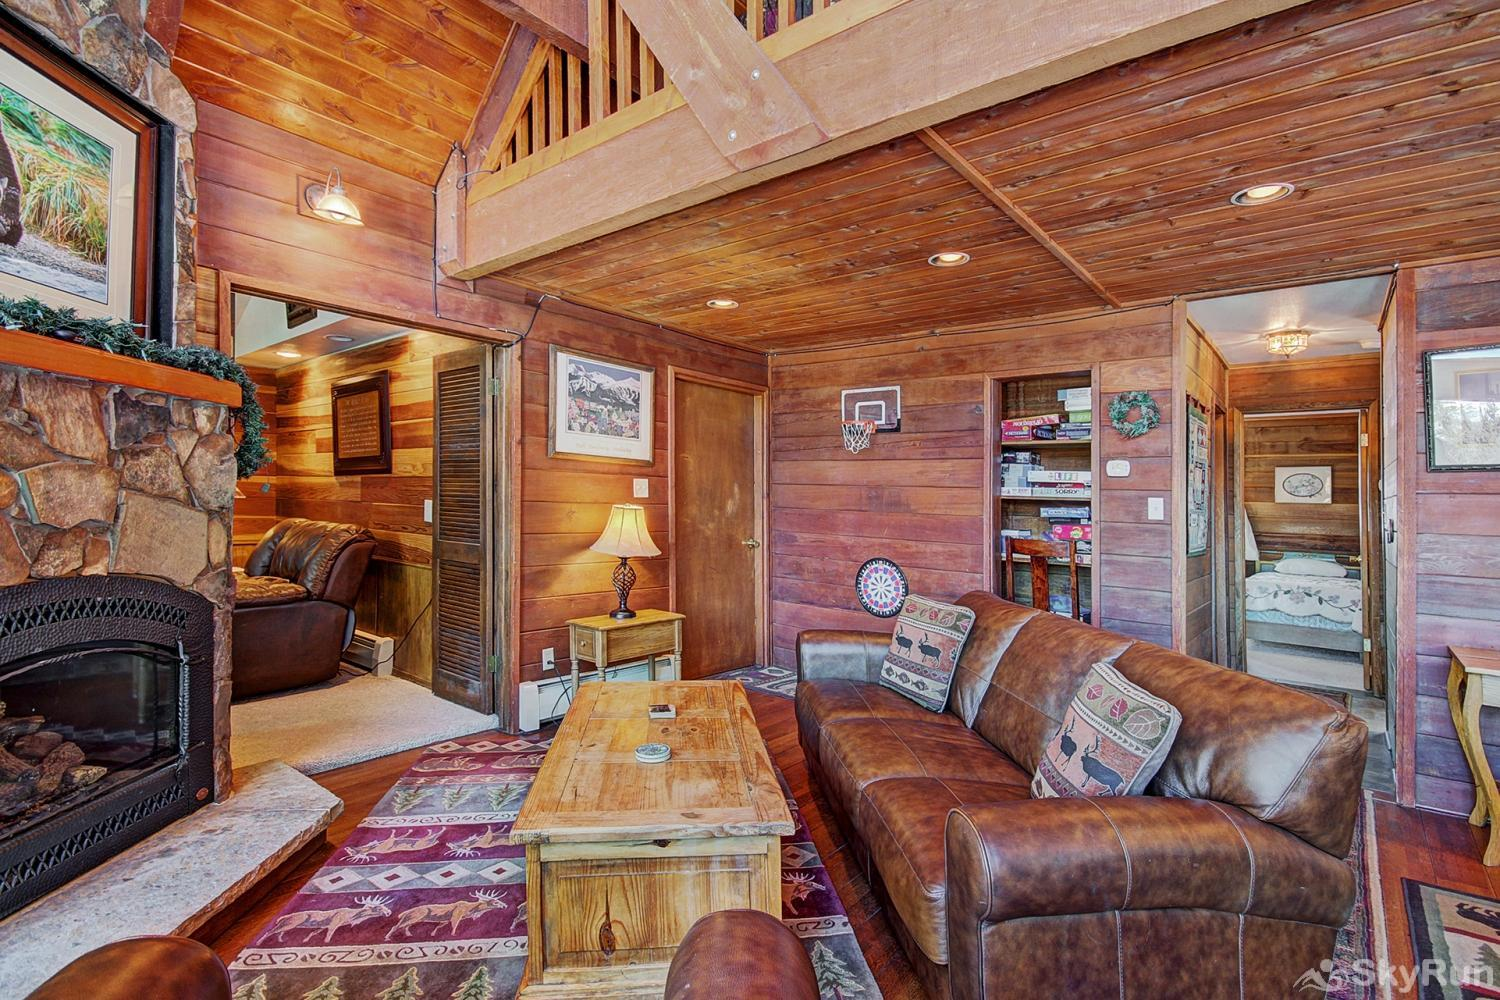 Summit View Chalet Spacious living room with lofted ceiling